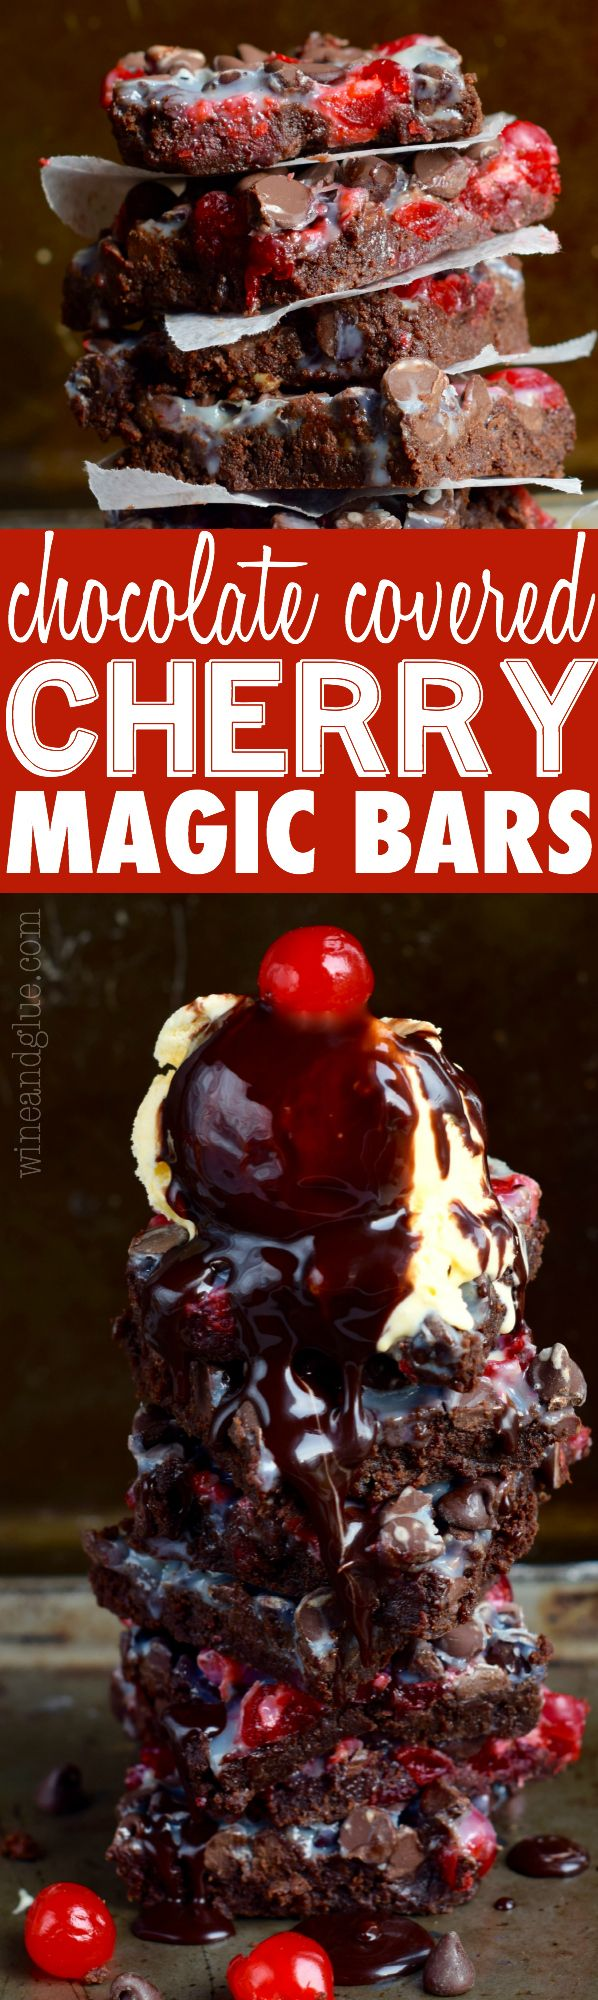 These Chocolate Covered Cherry Magic Bars and their brownie base are the delicious candy made into a decadent dessert!